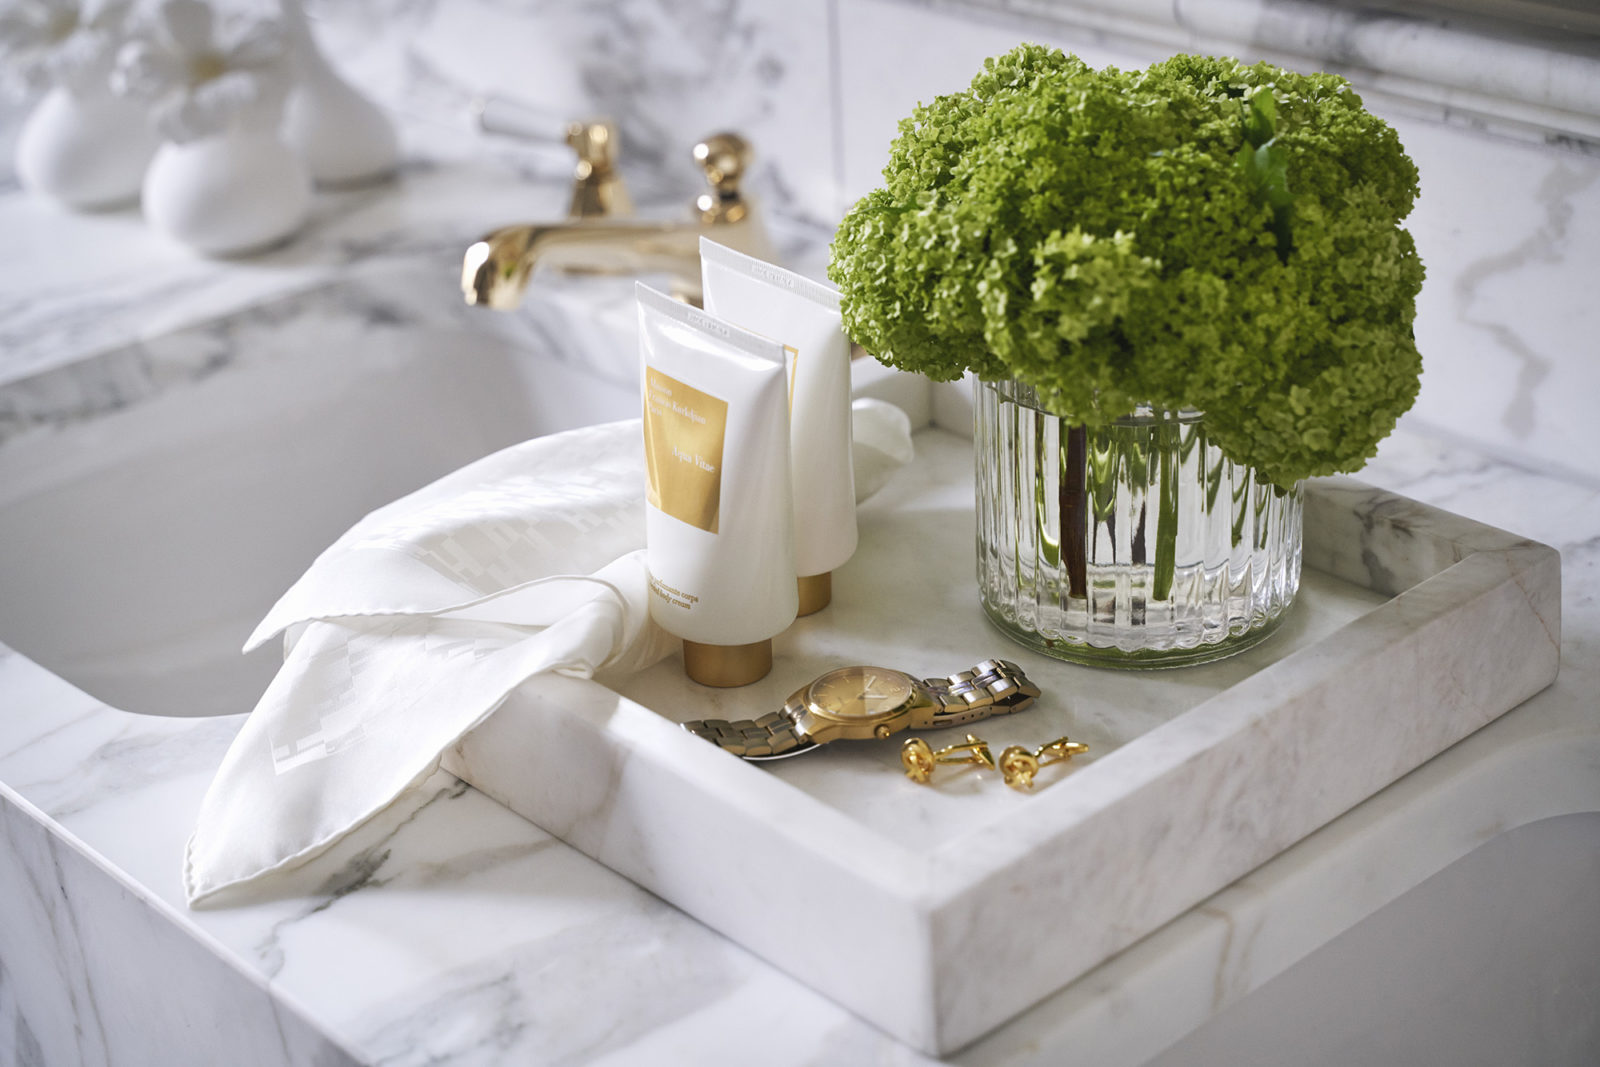 gold watch, cufflinks and toiletries in marble bathroom of Britannia Hotel's signature suite